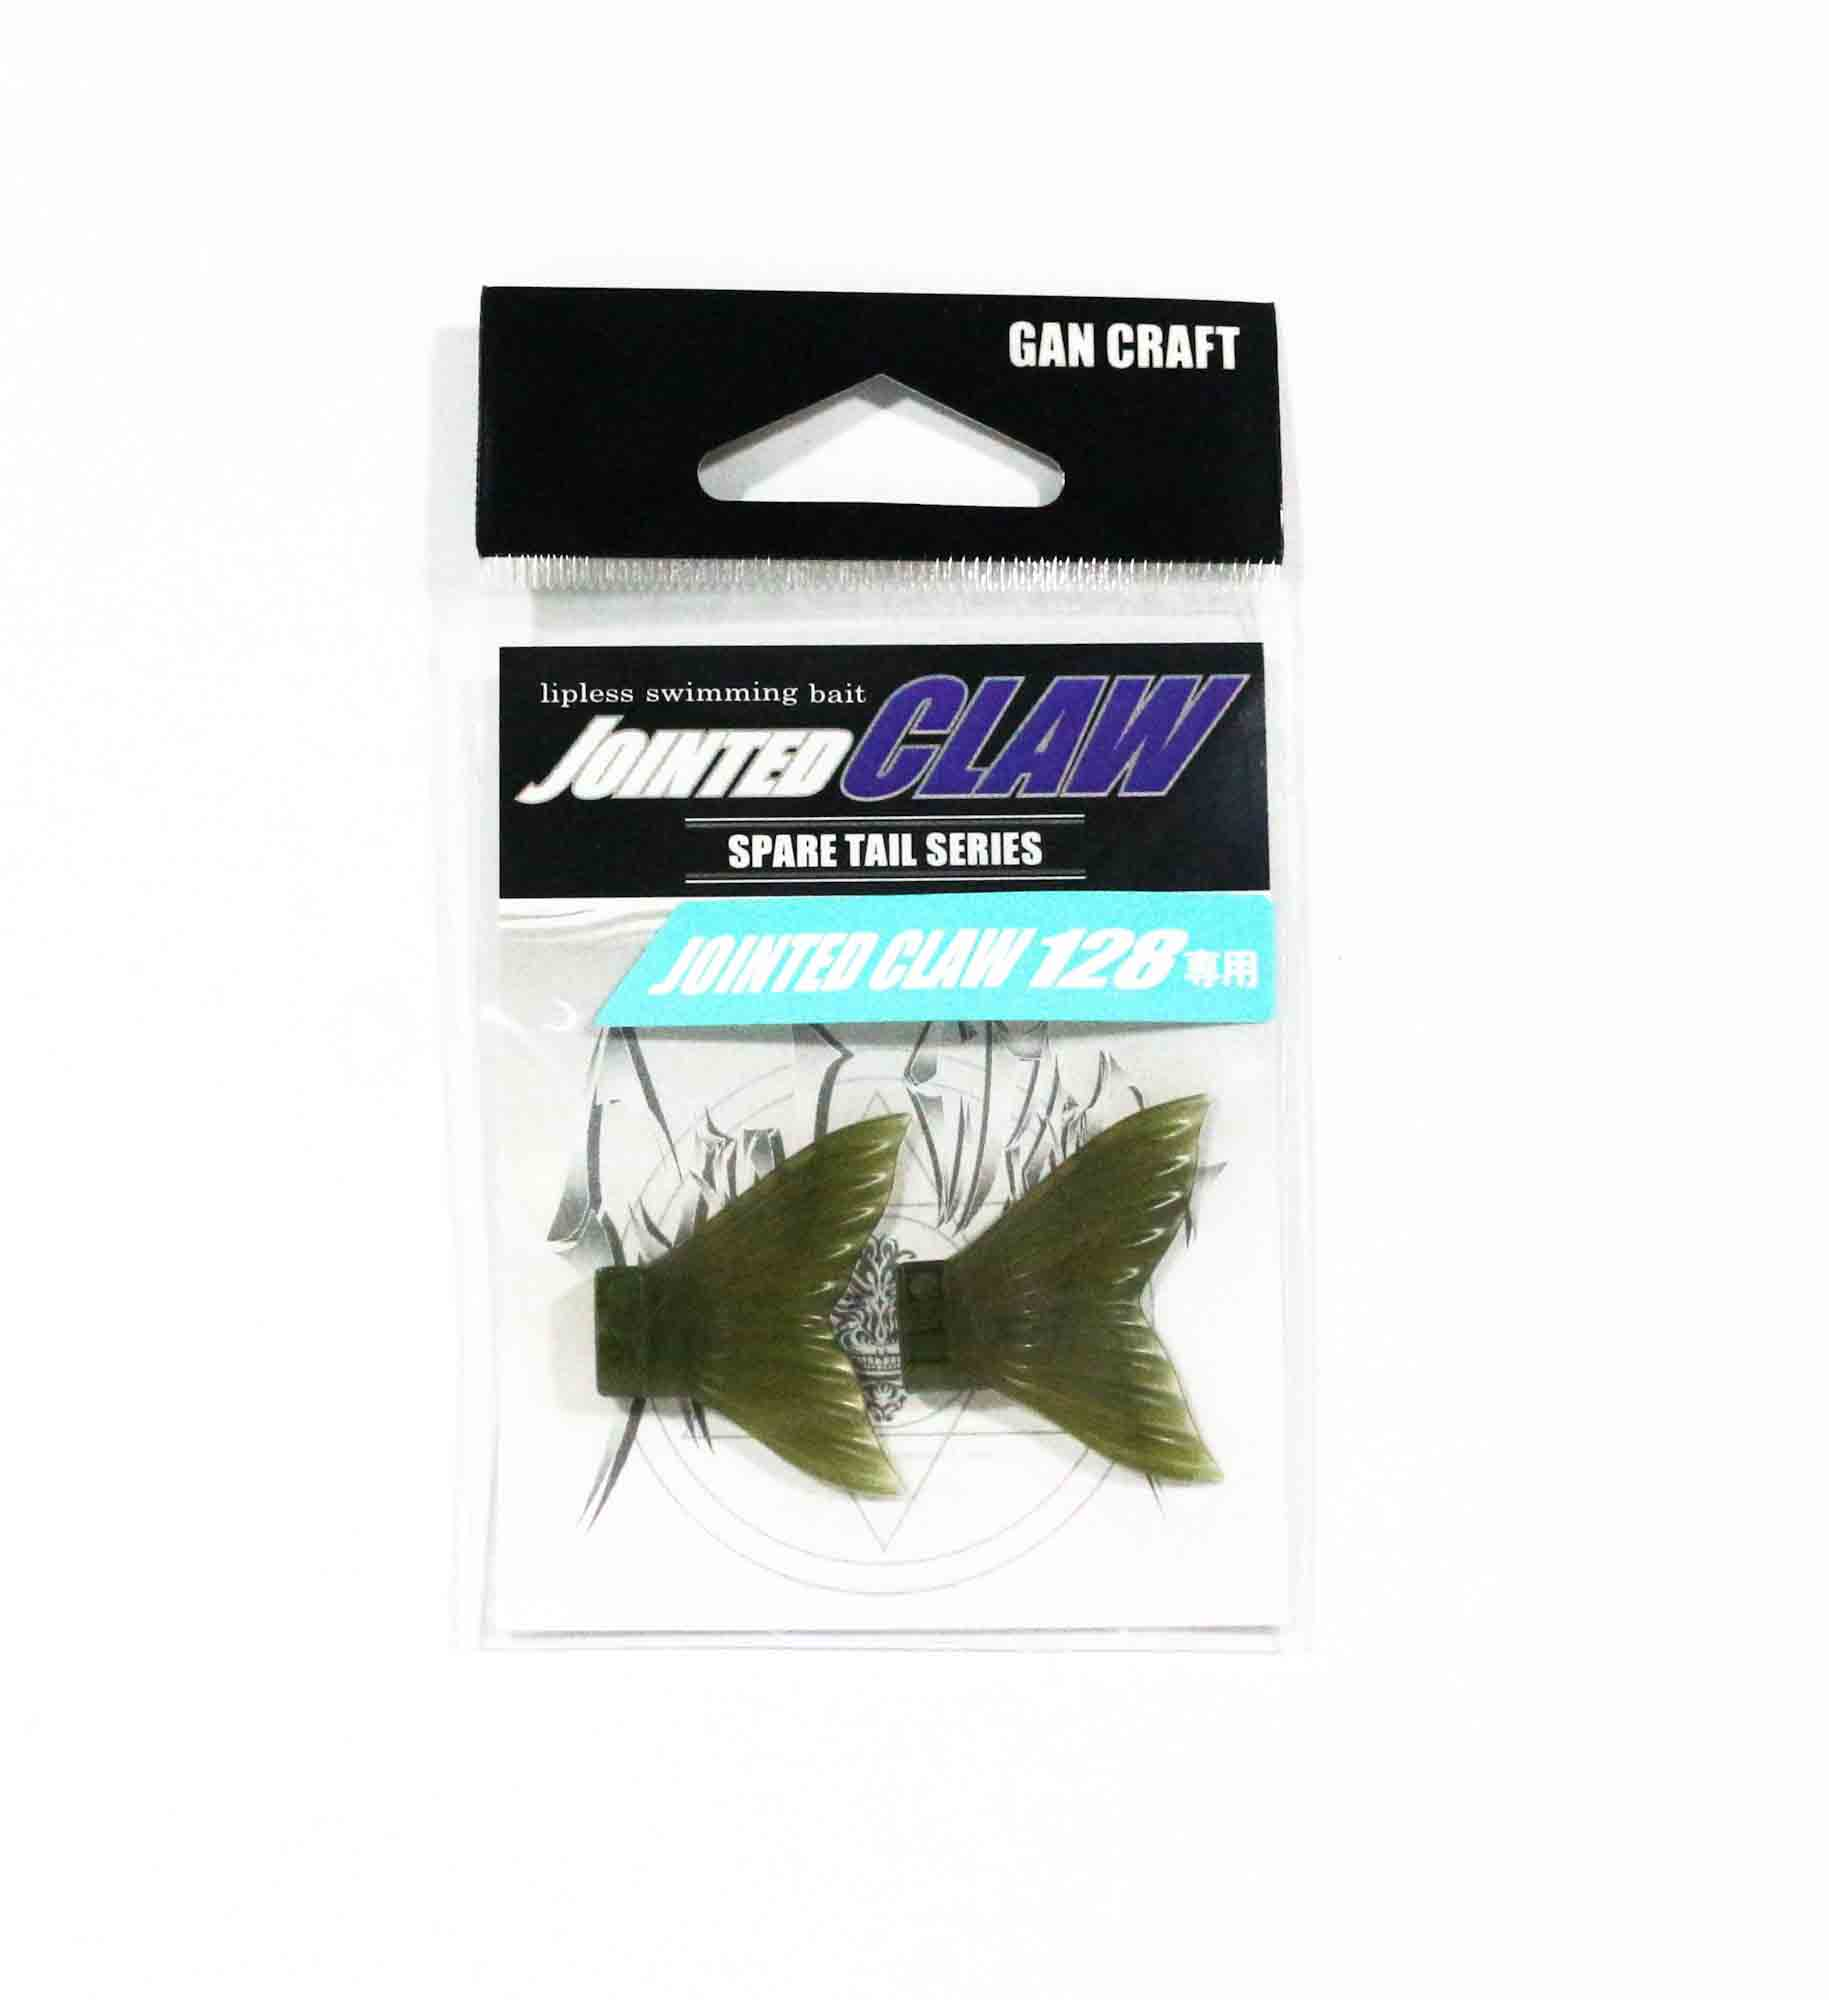 Gan Craft Jointed Claw 128 Spare Tail Normal 02 (1516)